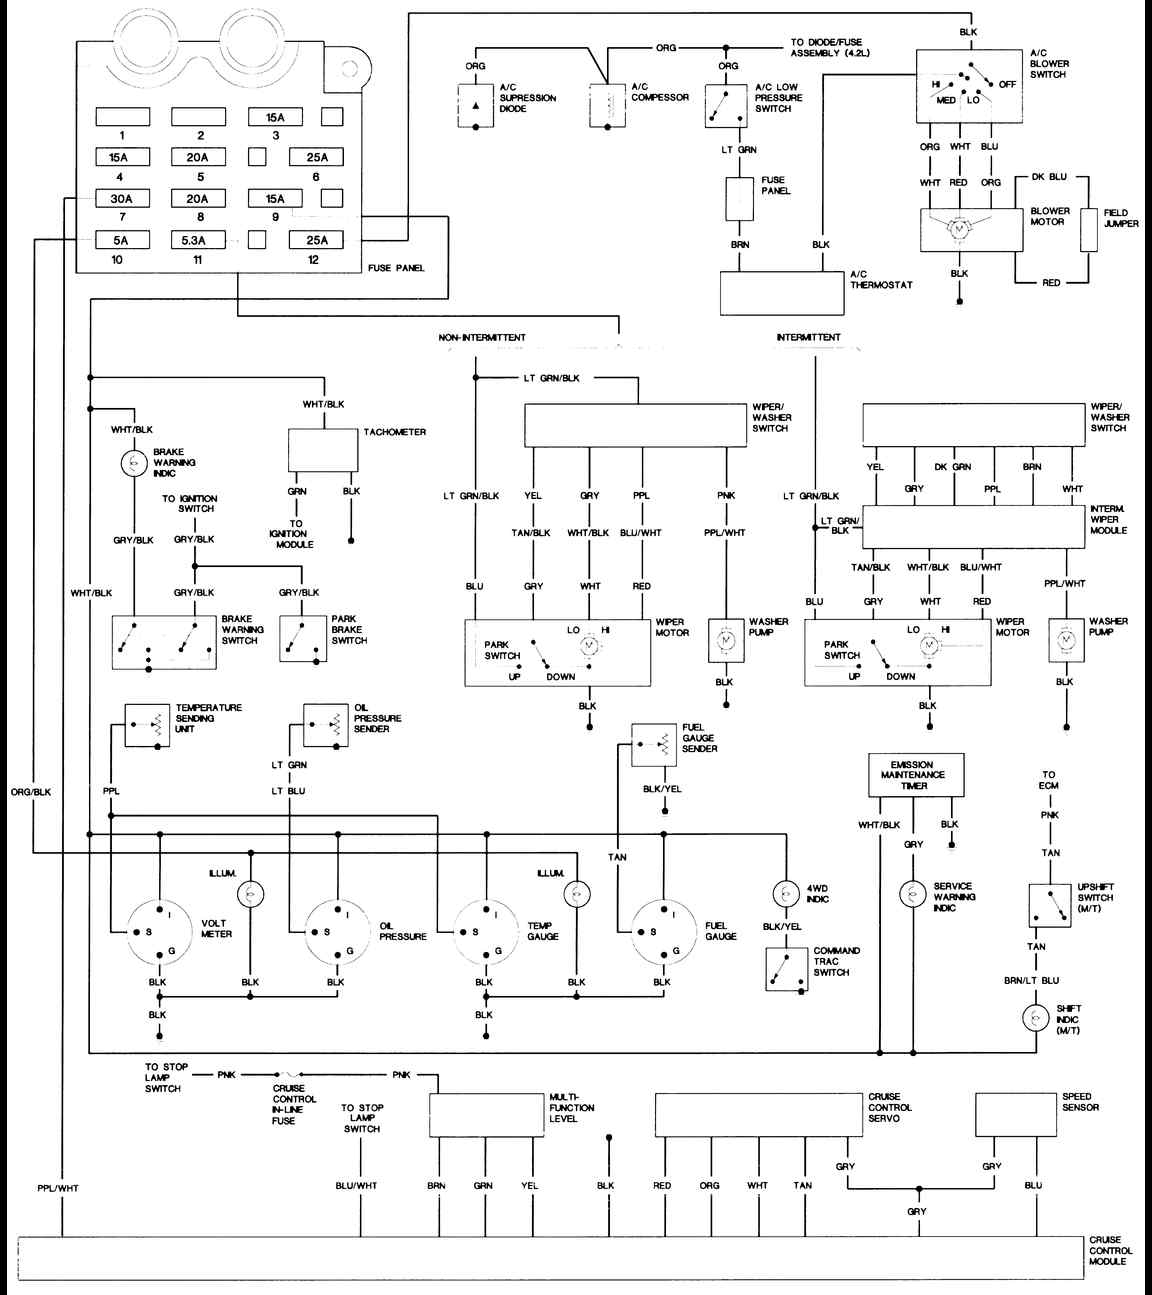 1988 jeep wrangler body 1 1988 jeep wiring diagrams index freeautomechanic 2006 jeep wrangler ac wiring diagram at webbmarketing.co